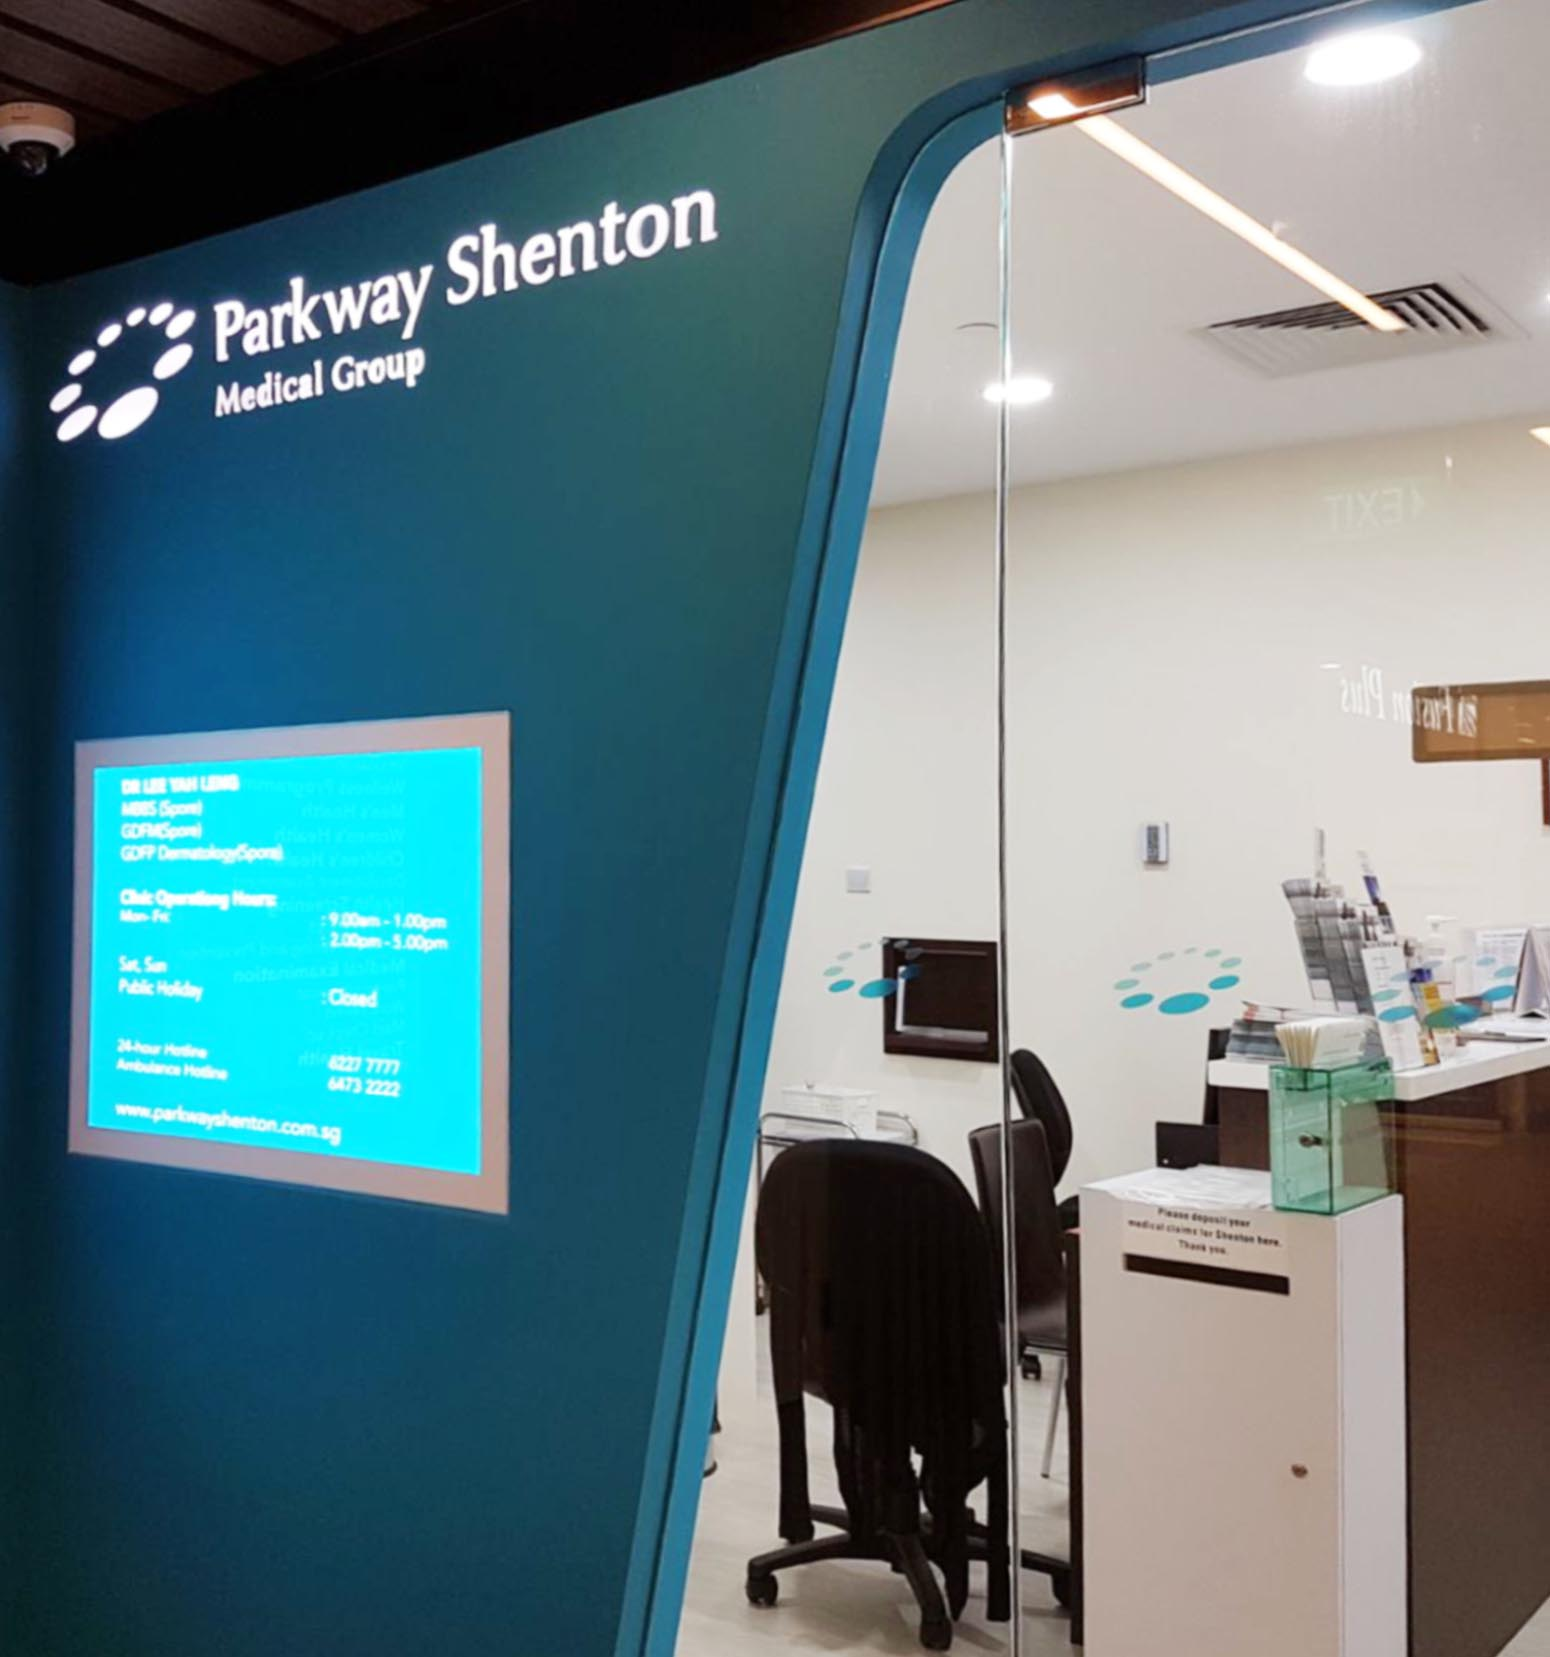 Singapore Post Centre - Shenton Medical Group